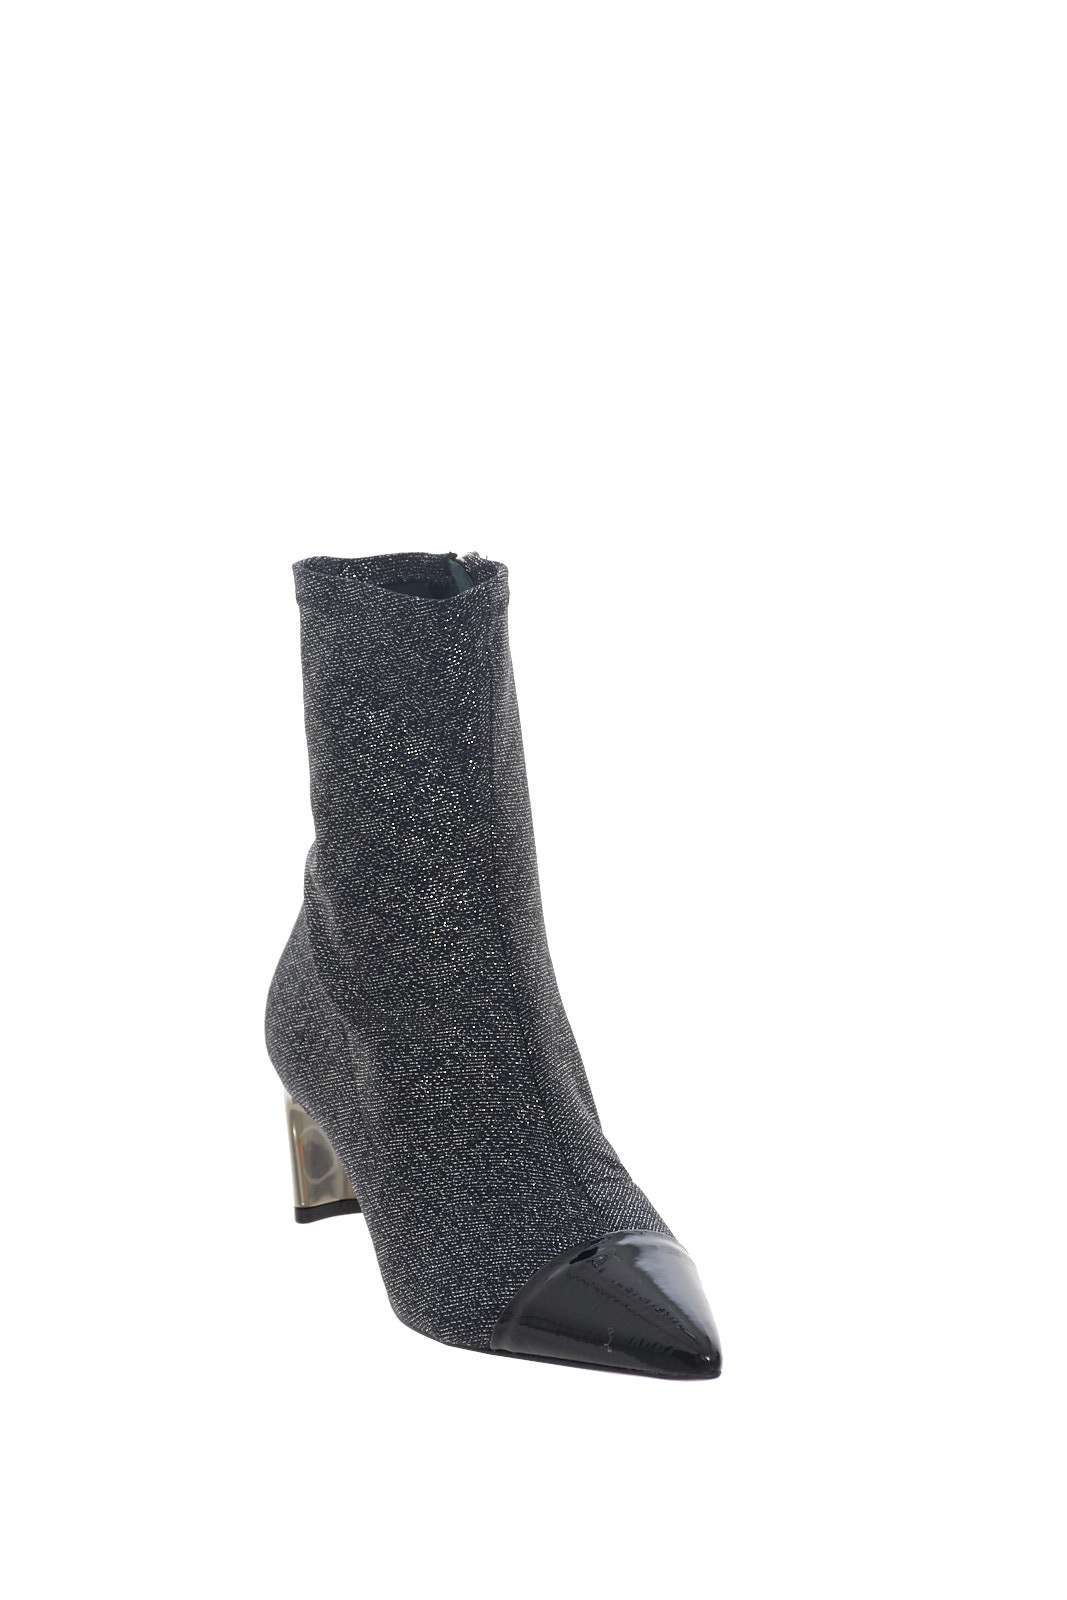 https://www.parmax.com/media/catalog/product/a/i/PE-outlet_parmax-tronchetto-donna-Vicenza-468008-C.jpg